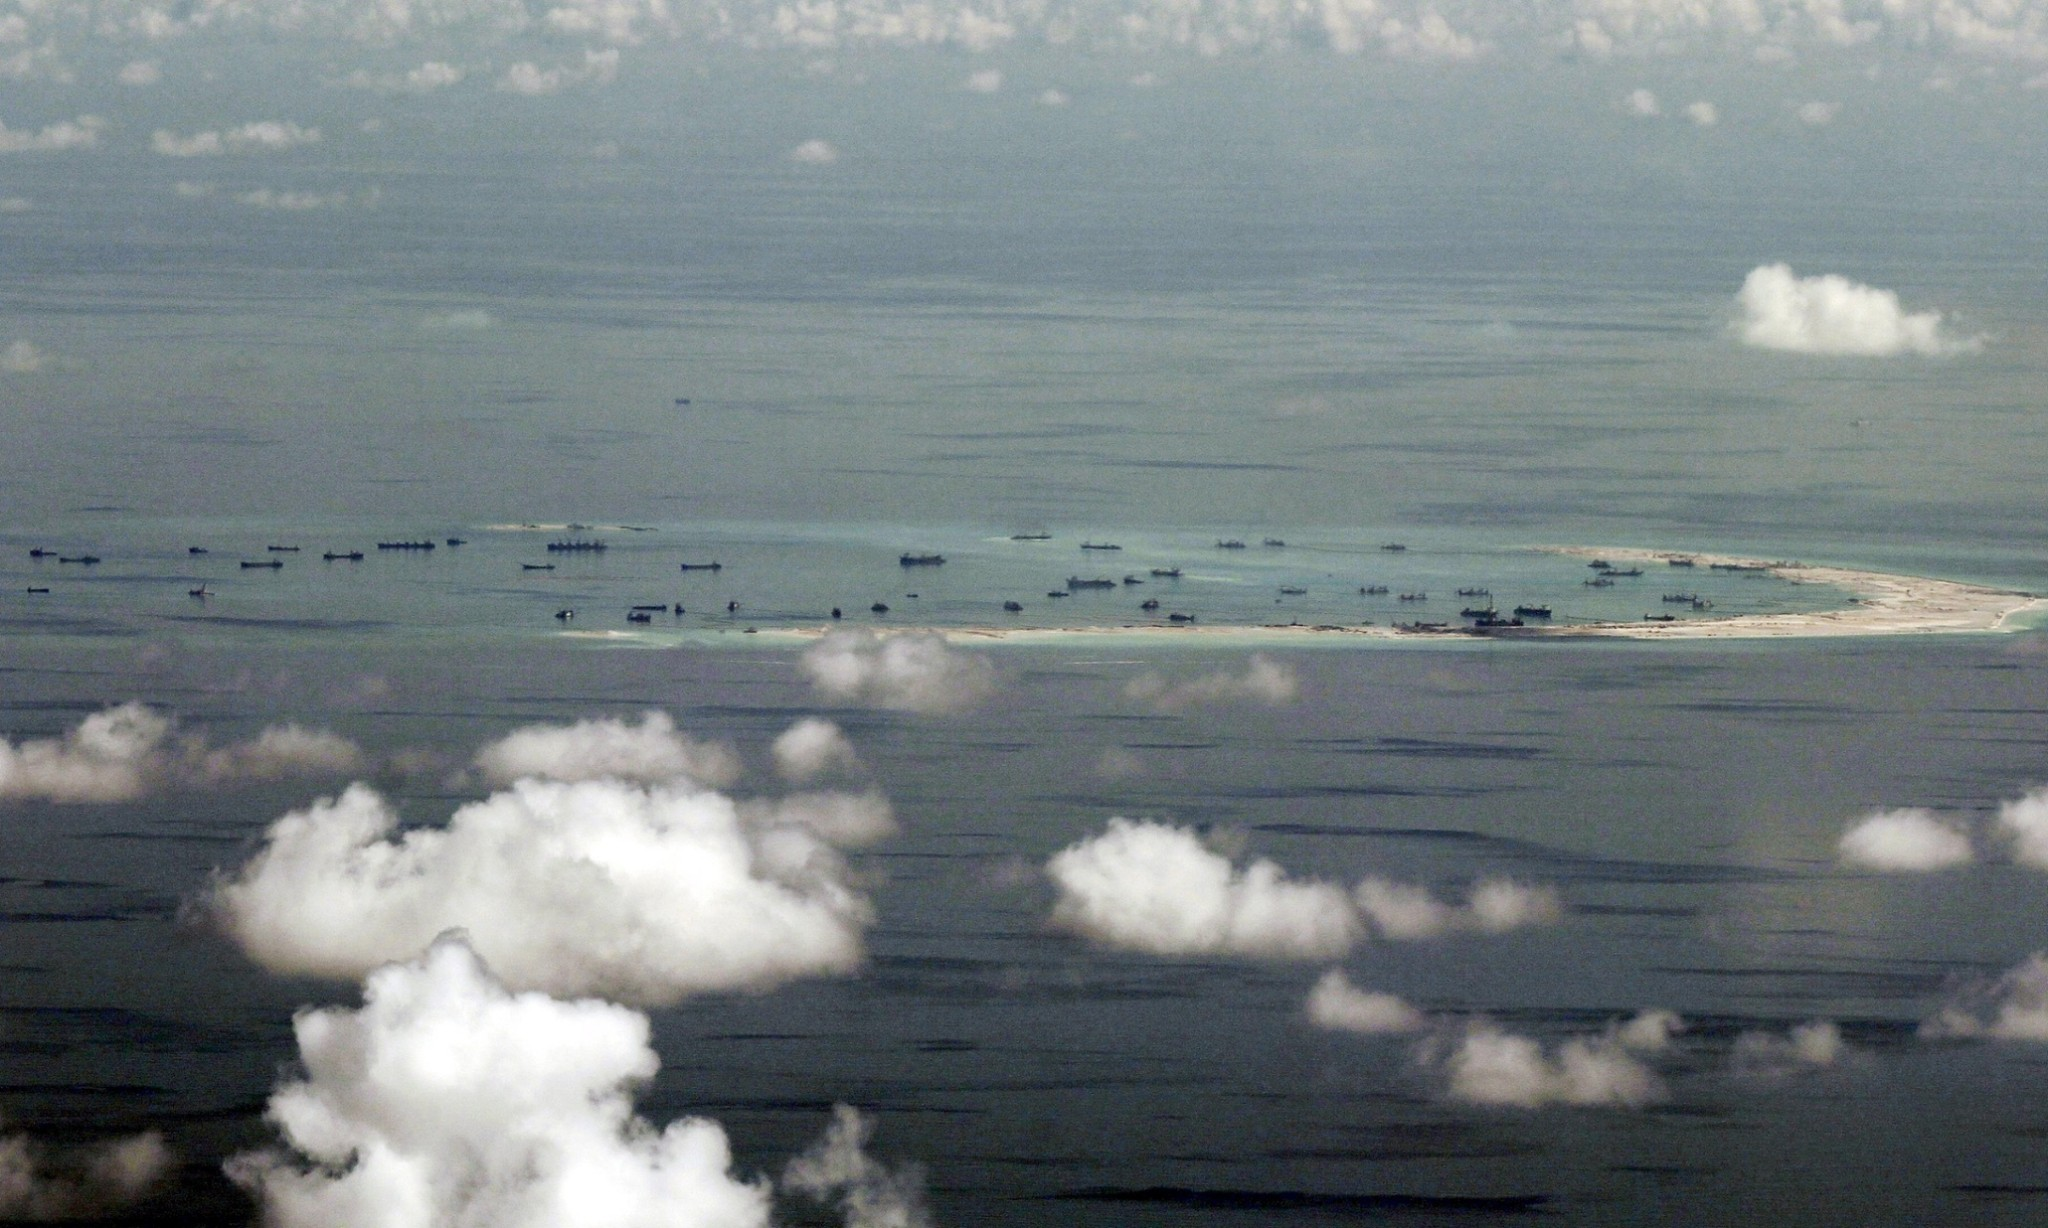 Preventing Ecocide in South China Sea